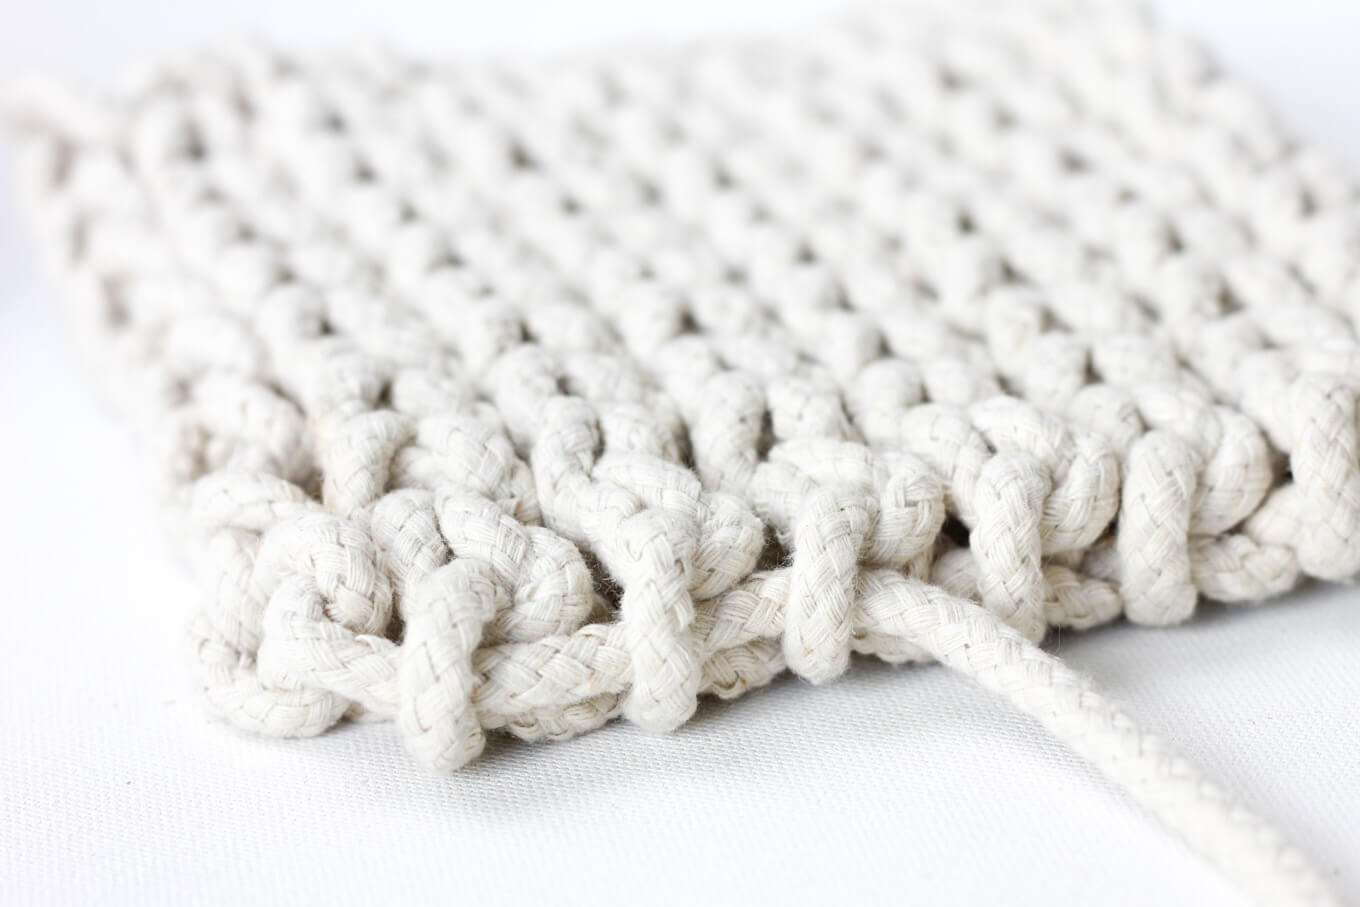 Add a handmade touch to your purchased gifts with this modern crochet trivet made from rope clothesline! Perfect DIY hostess gift.